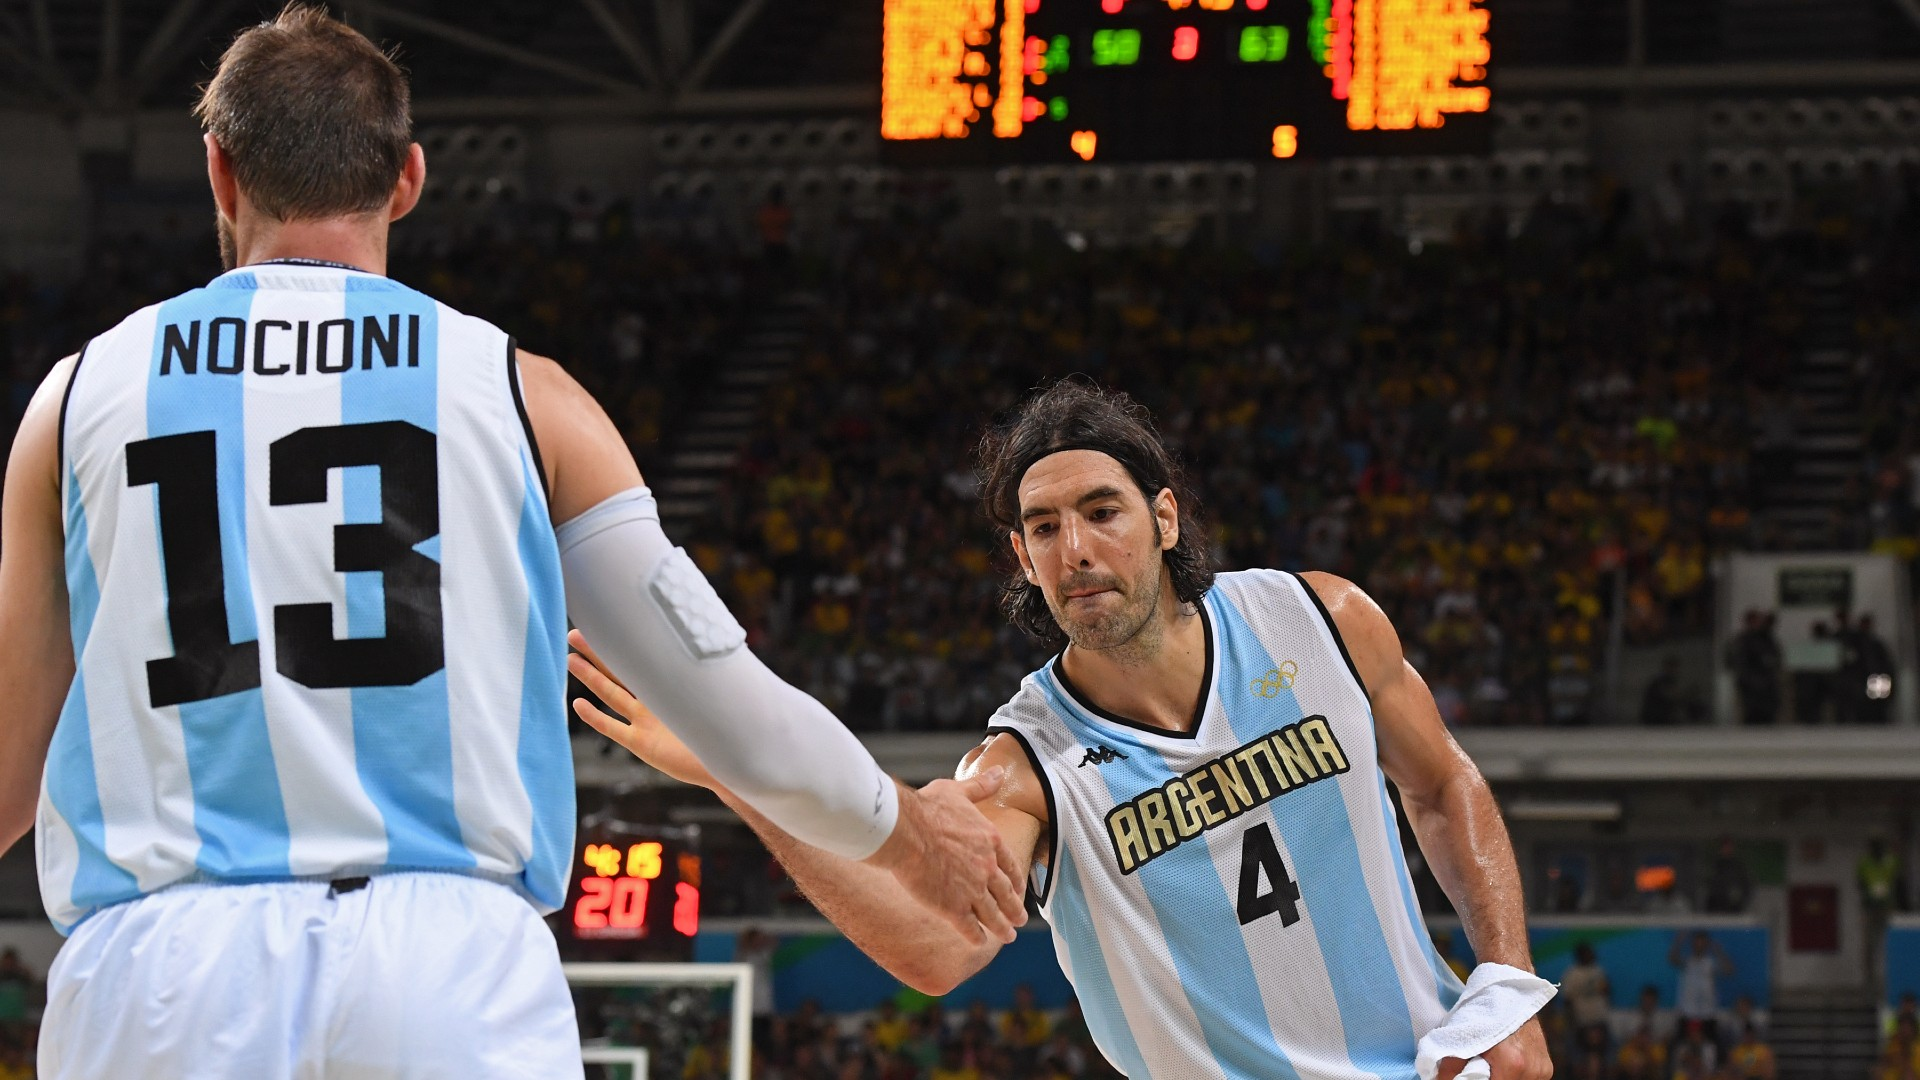 The Argentine basketball team at the Olympic Games records statistics